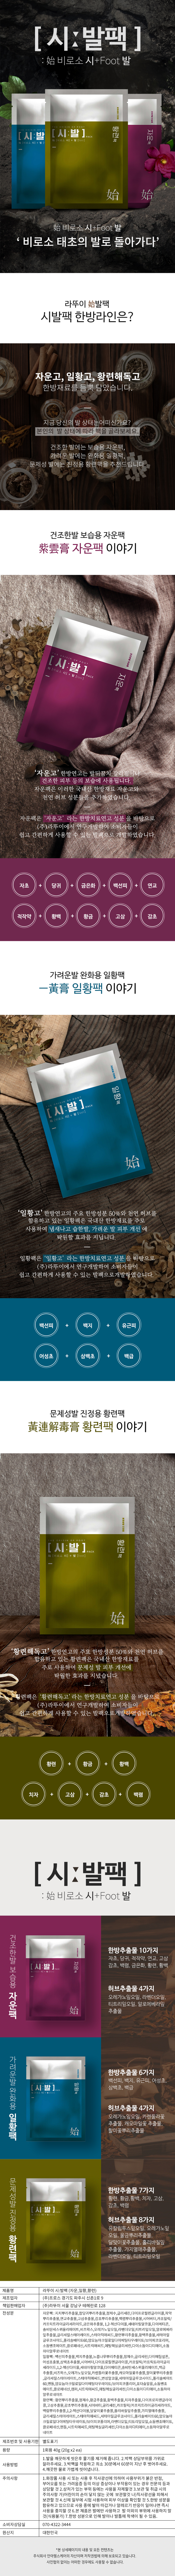 Si-Bal Pack(Time for foot pack) Oriental medicine -HwangRyun Pack(Calming) 상세이미지 1